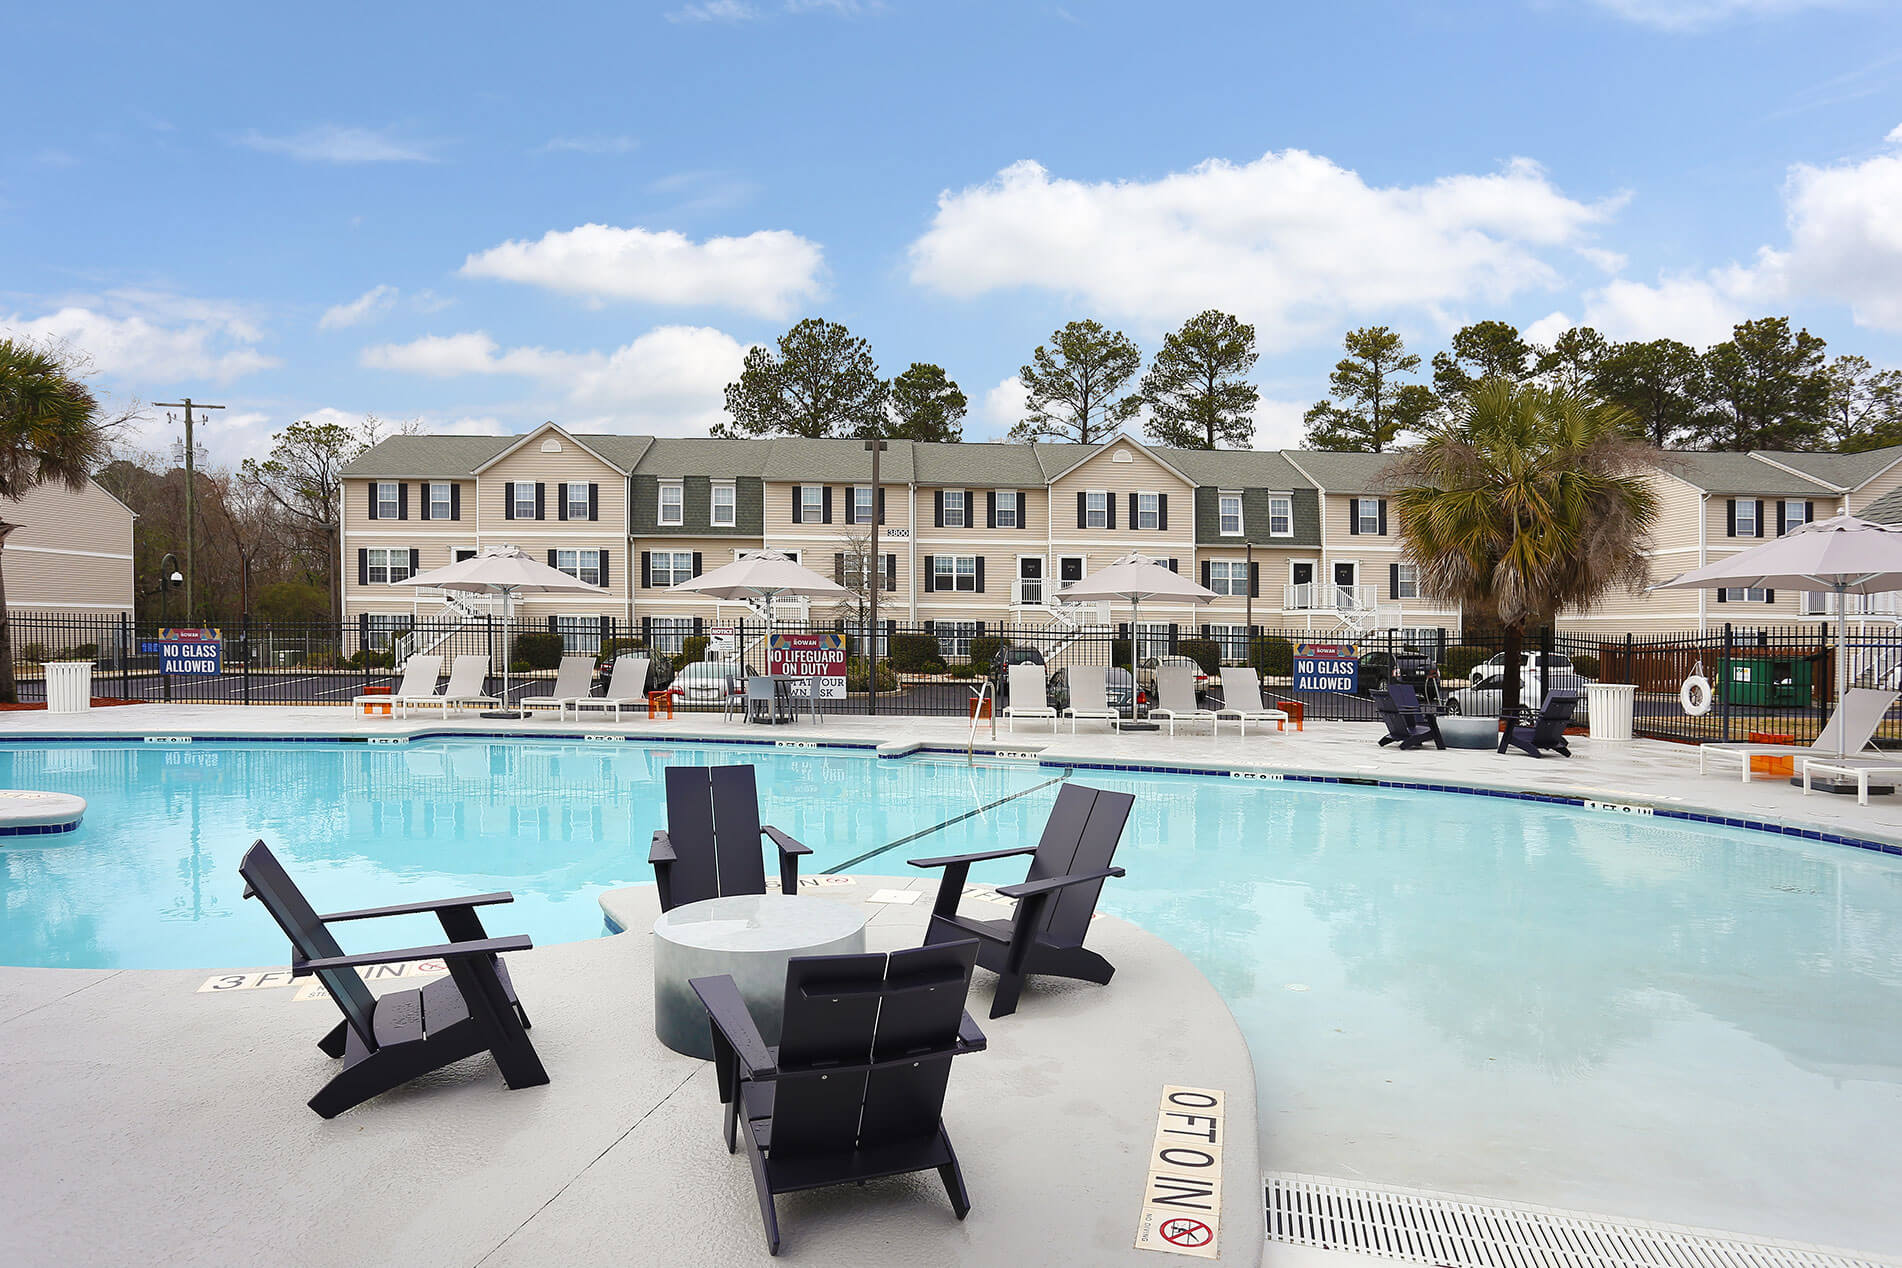 Outdoor Pool With Buildings in the Background at The Rowan Apartments